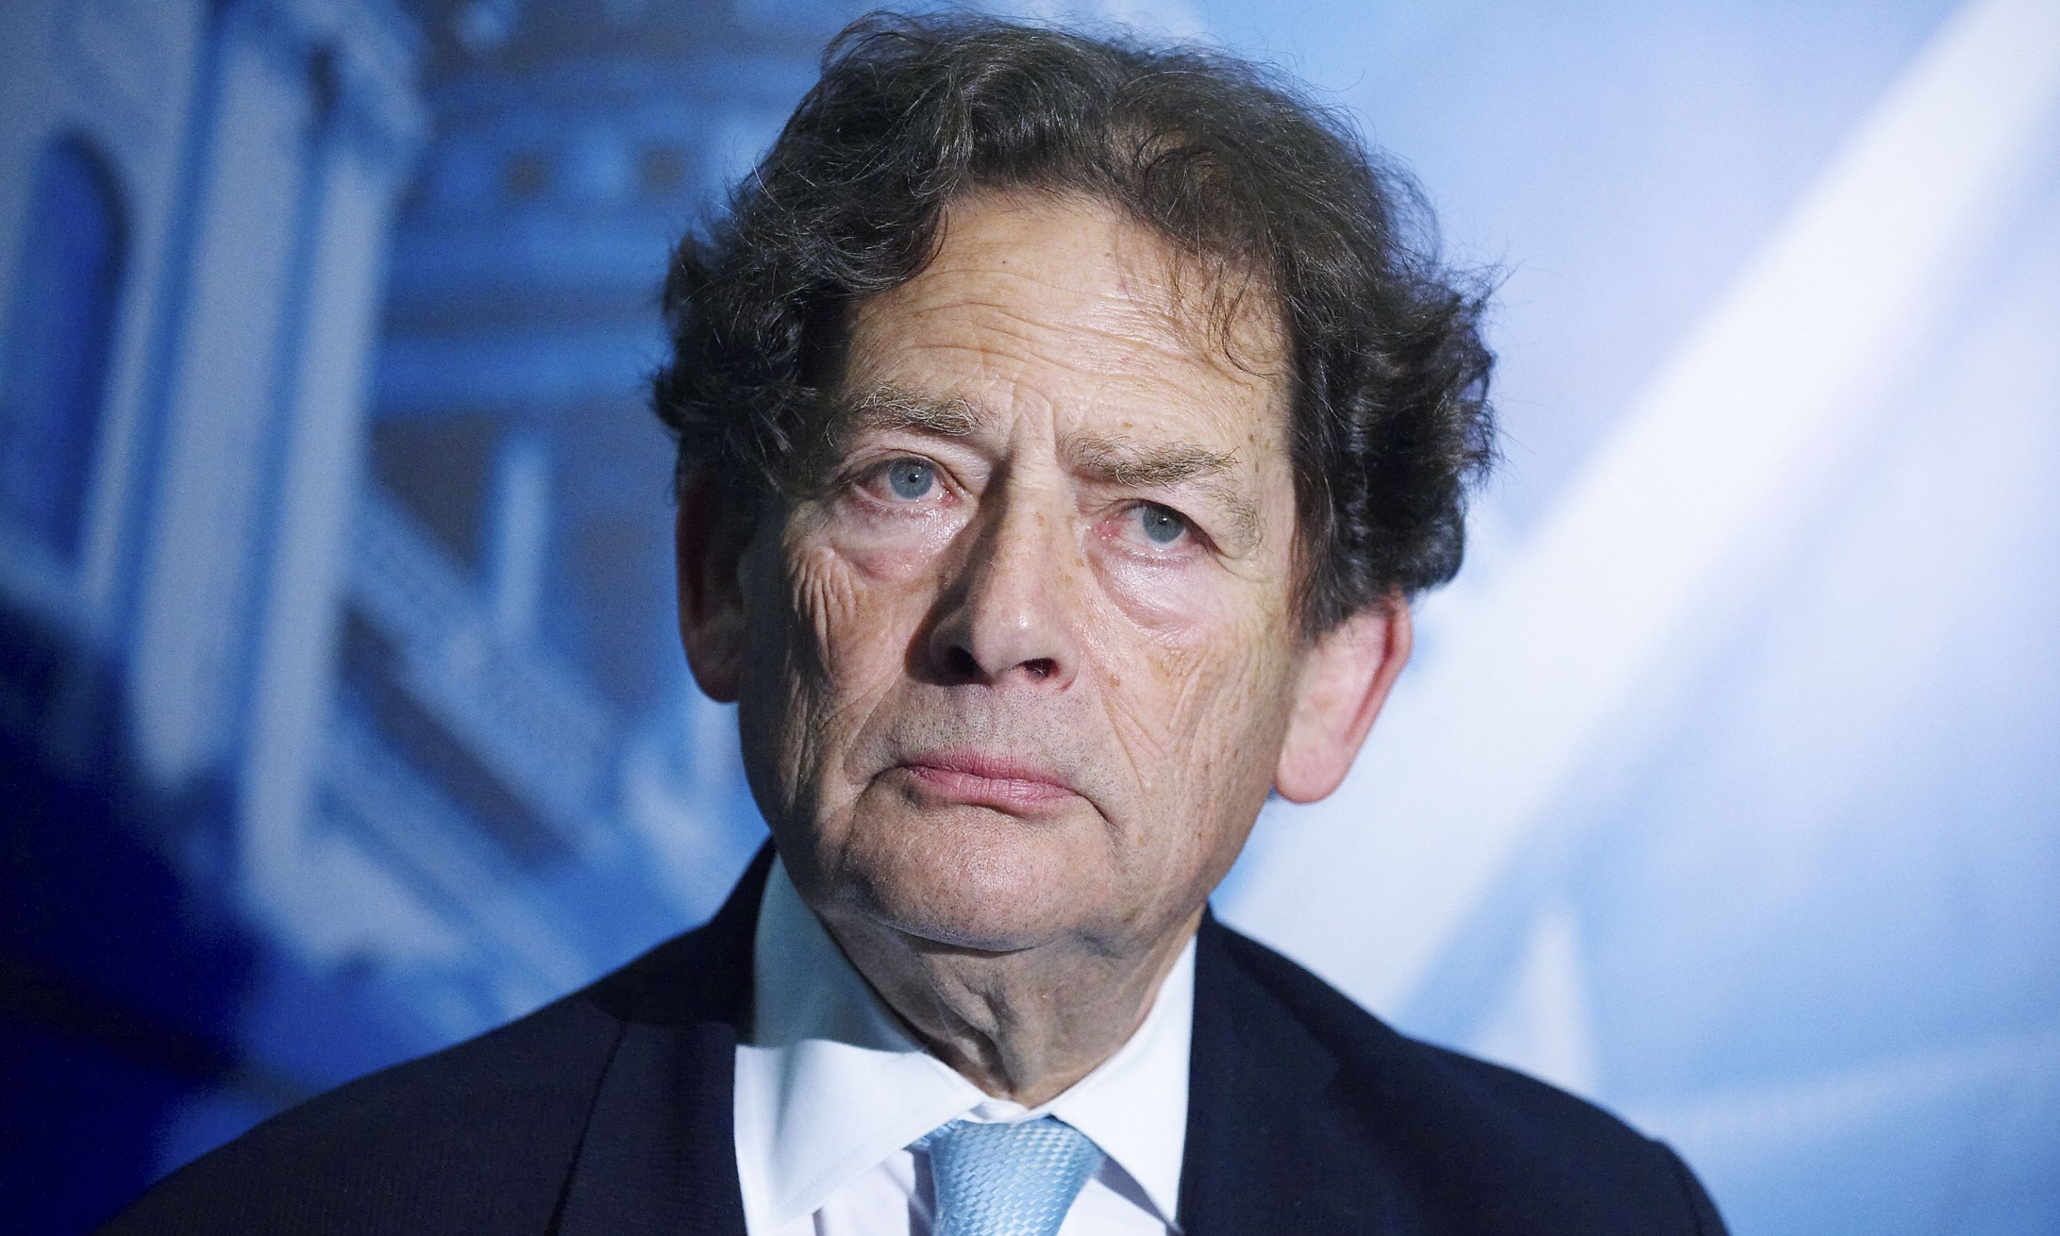 Two secret funders of Nigel Lawson's climate sceptic organisation revealed